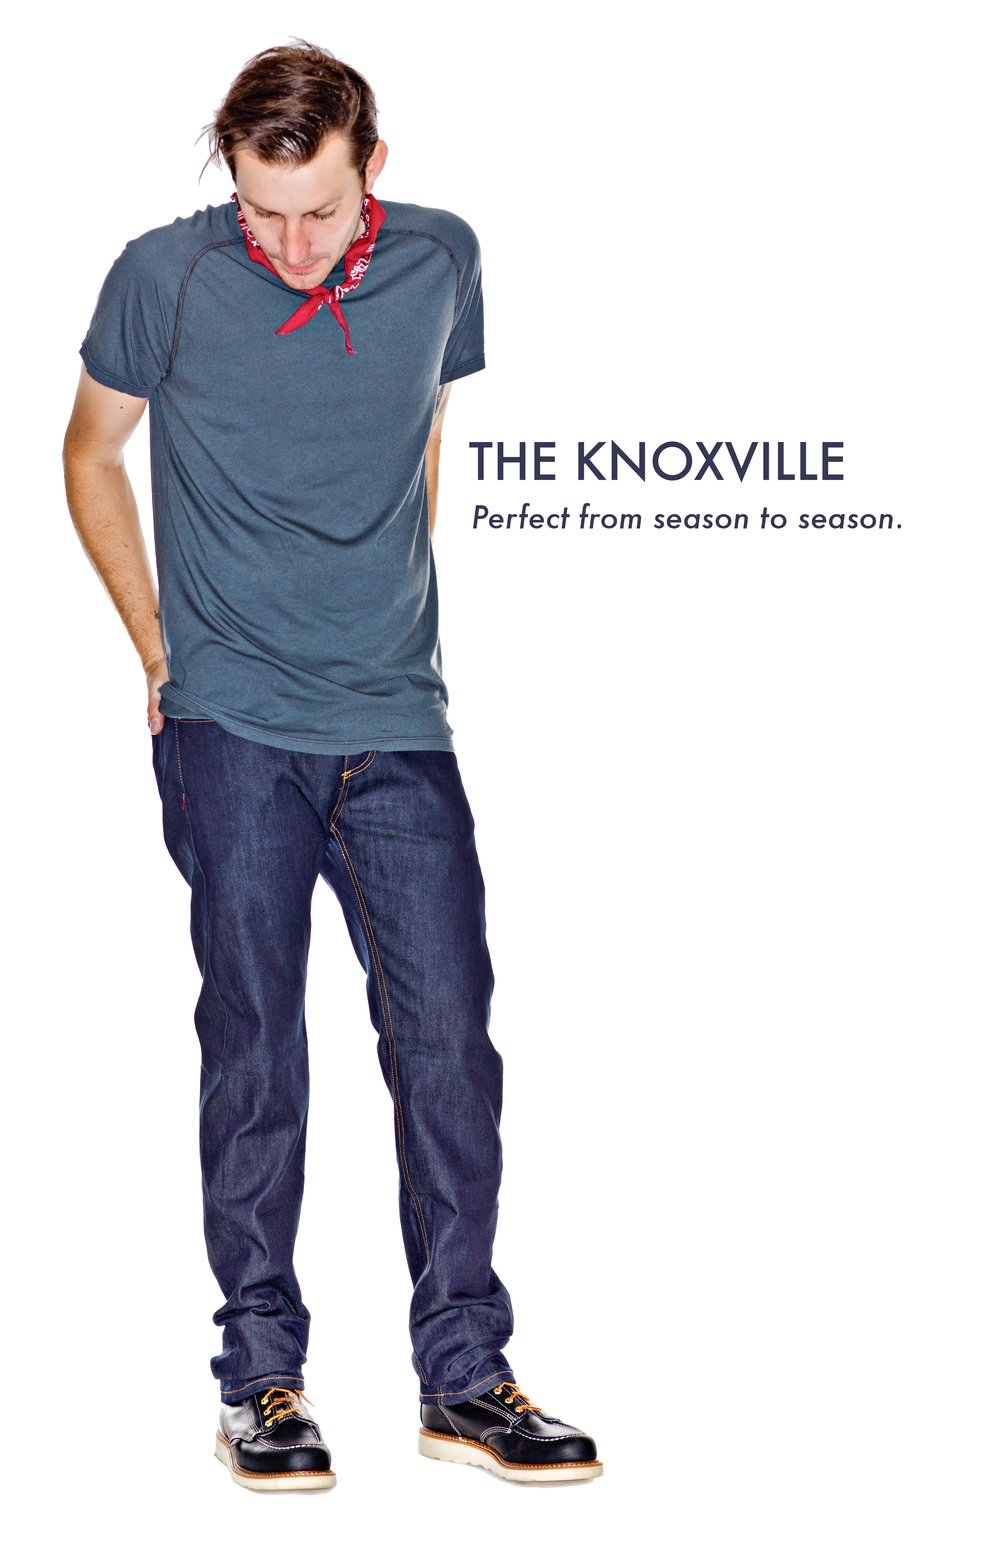 Knoxville Promo.jpg